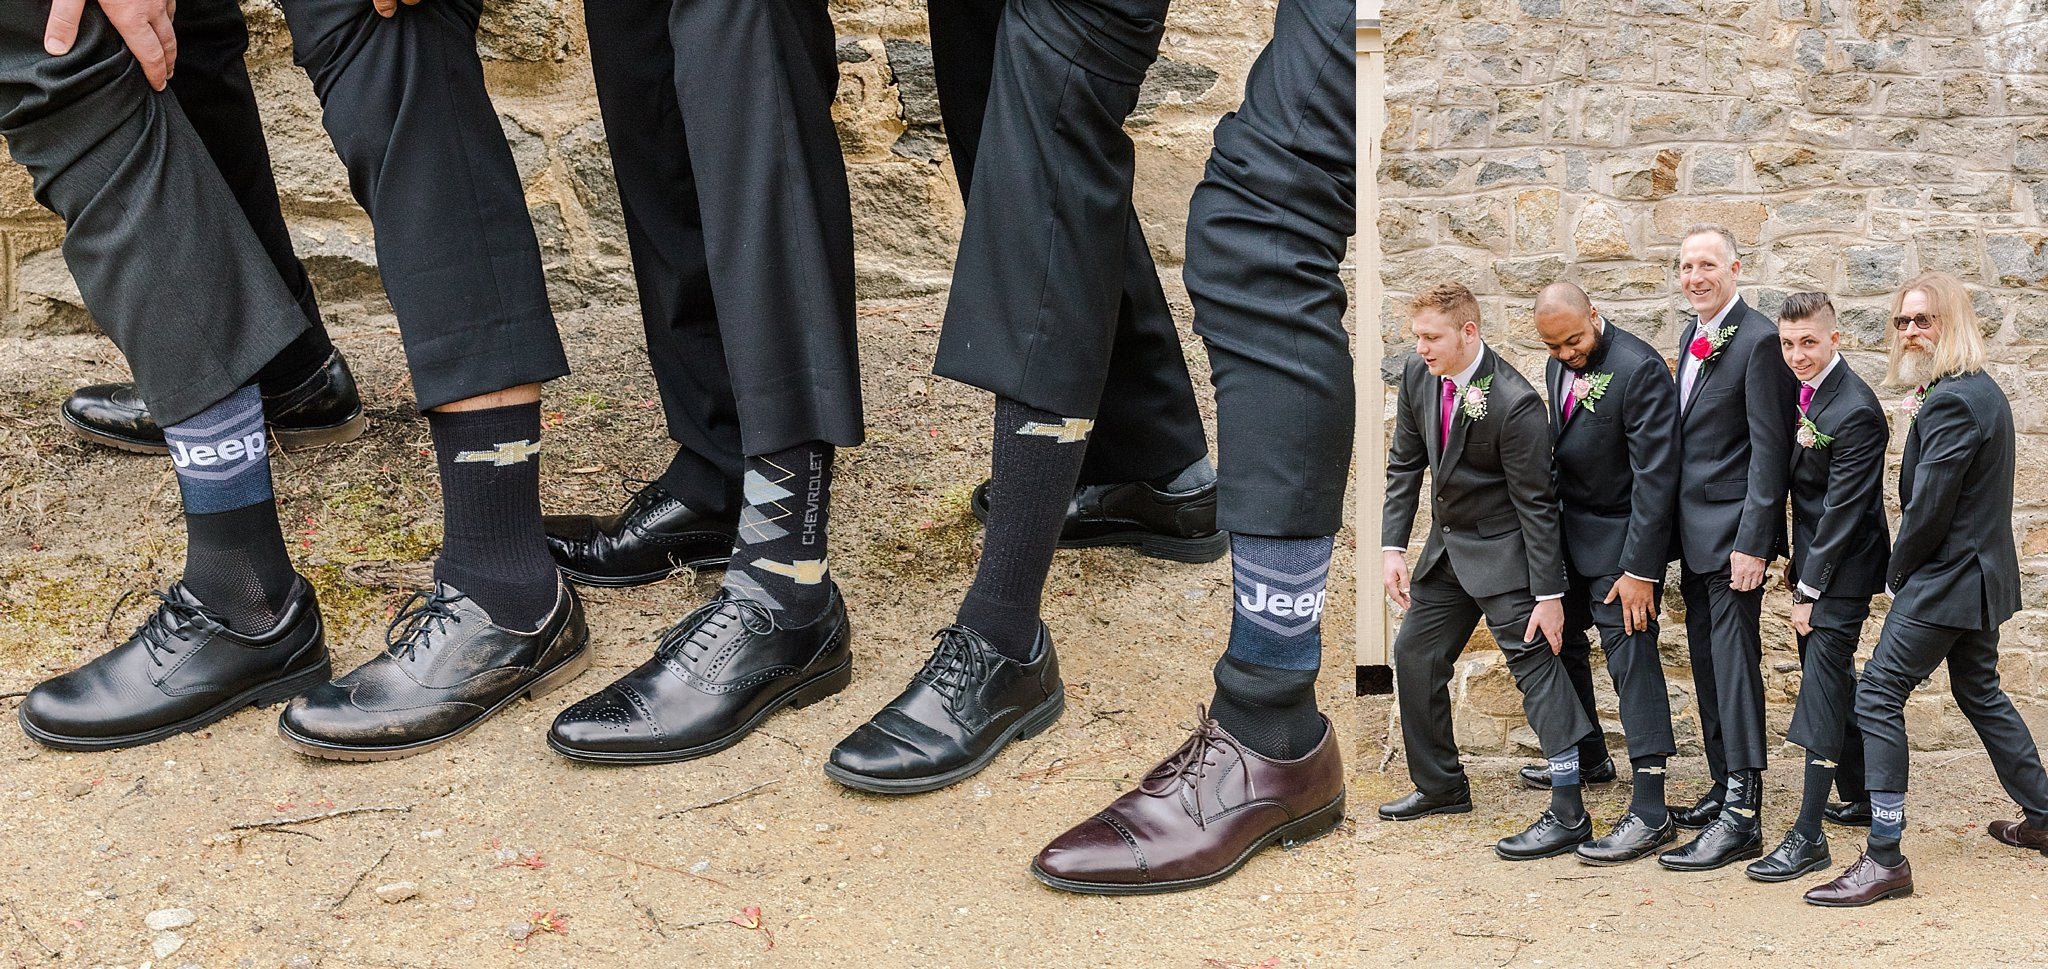 Chesterfield Wedding - Groomsmen